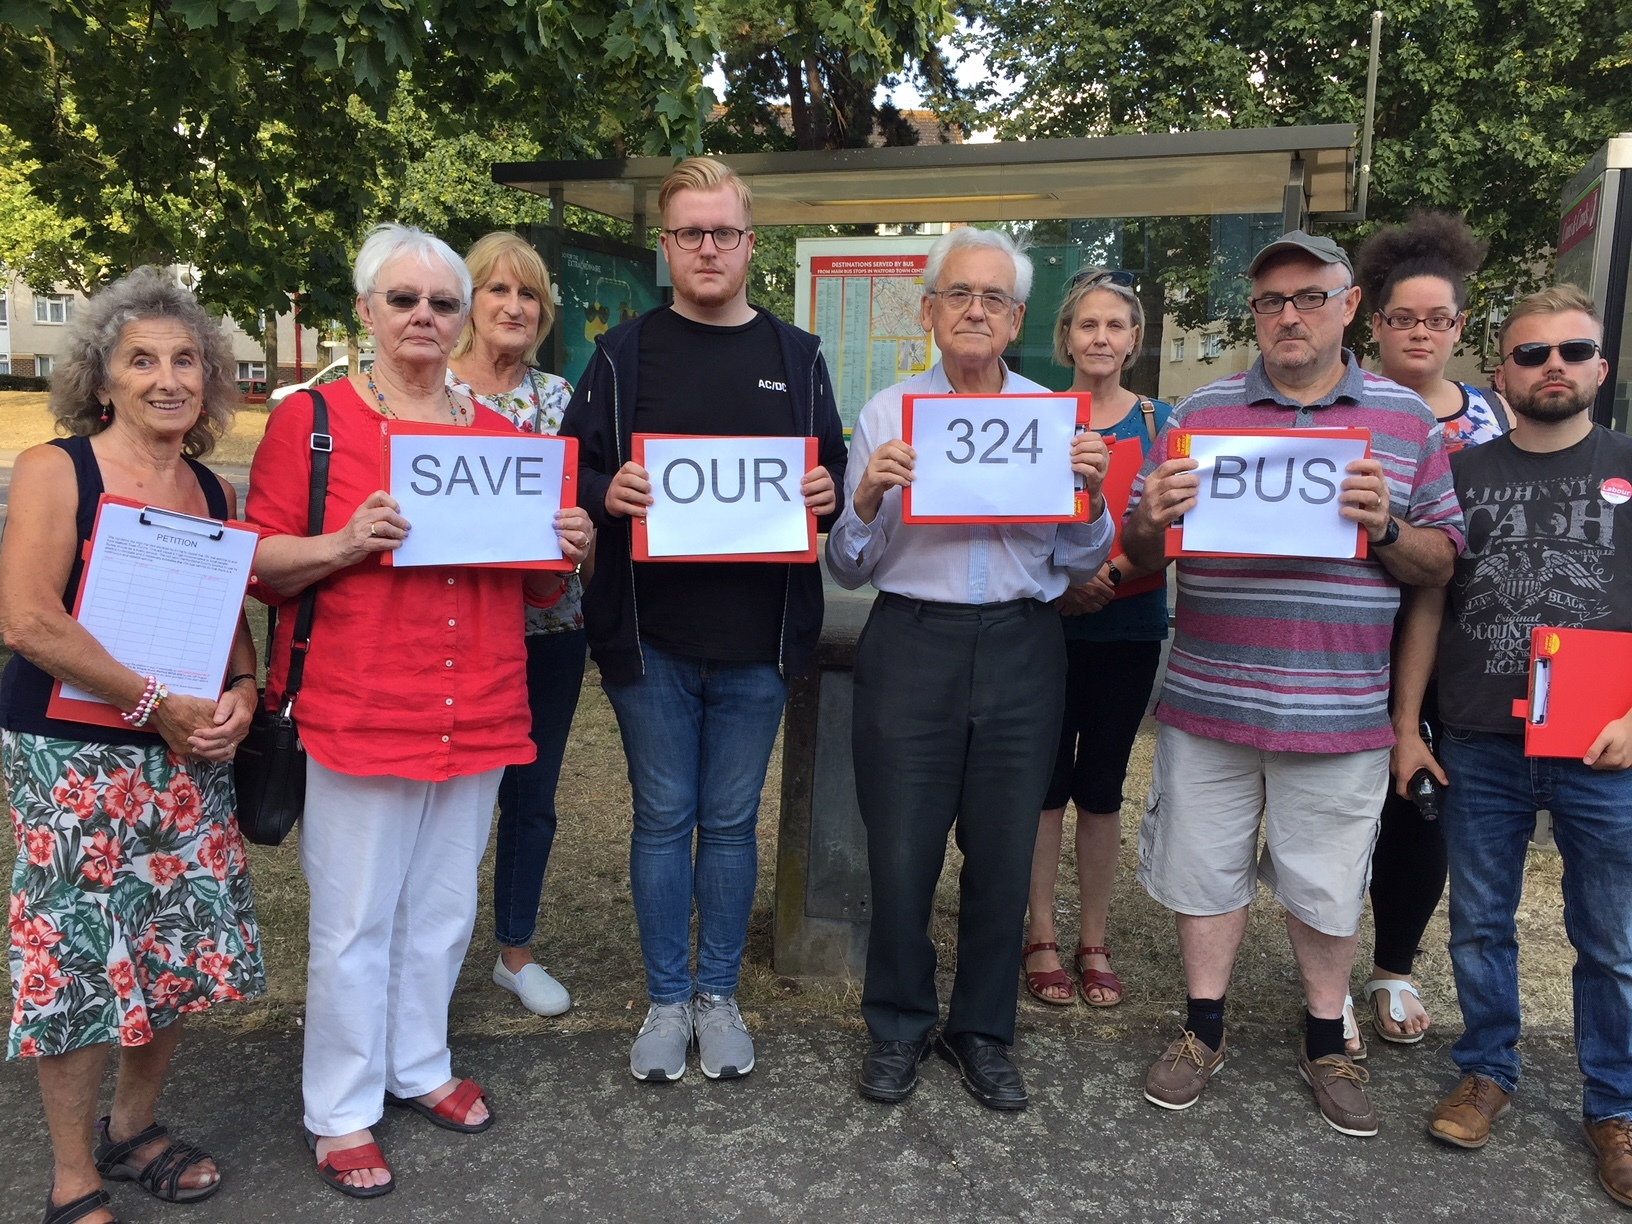 Campaigners outside a bus stop on the Meriden estate including John Dowdle (holding the 324 card)